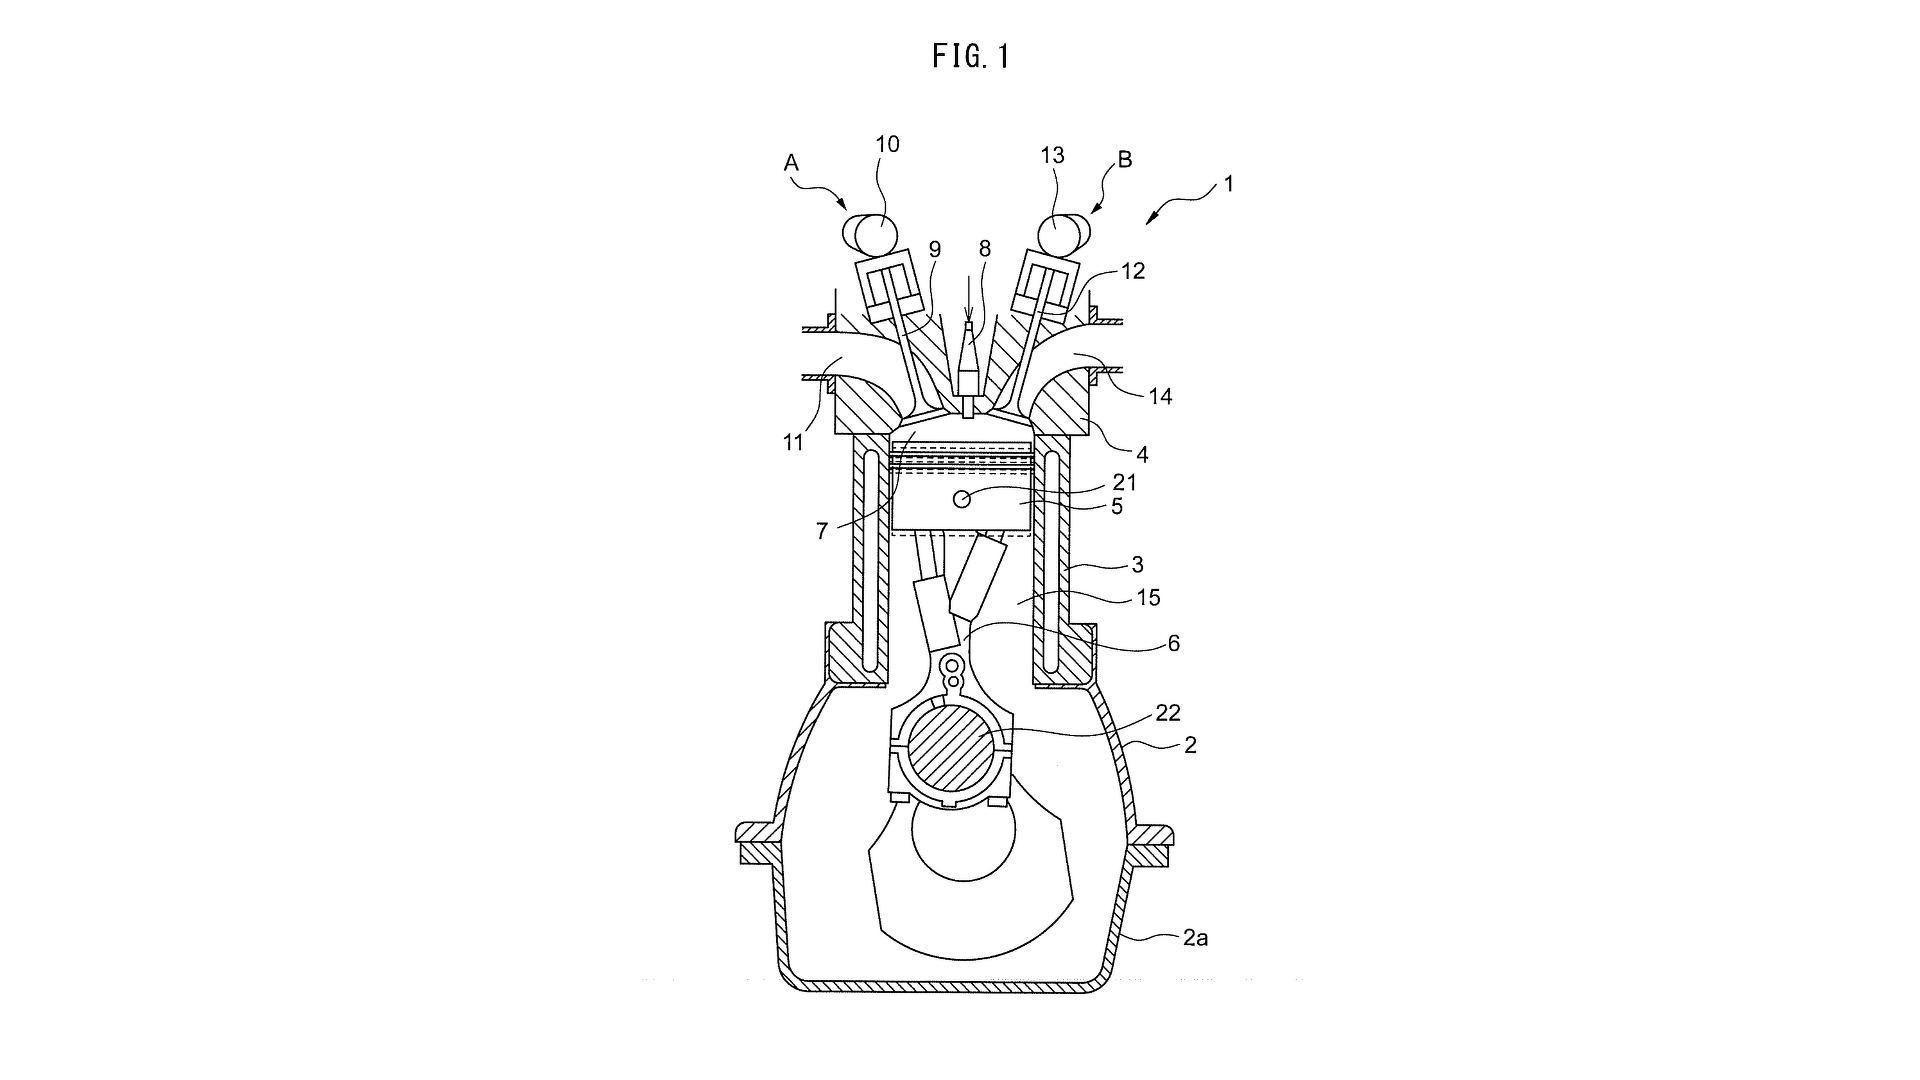 Toyota Variable Compression Engine Patent Shows ICE Not Dead Yet